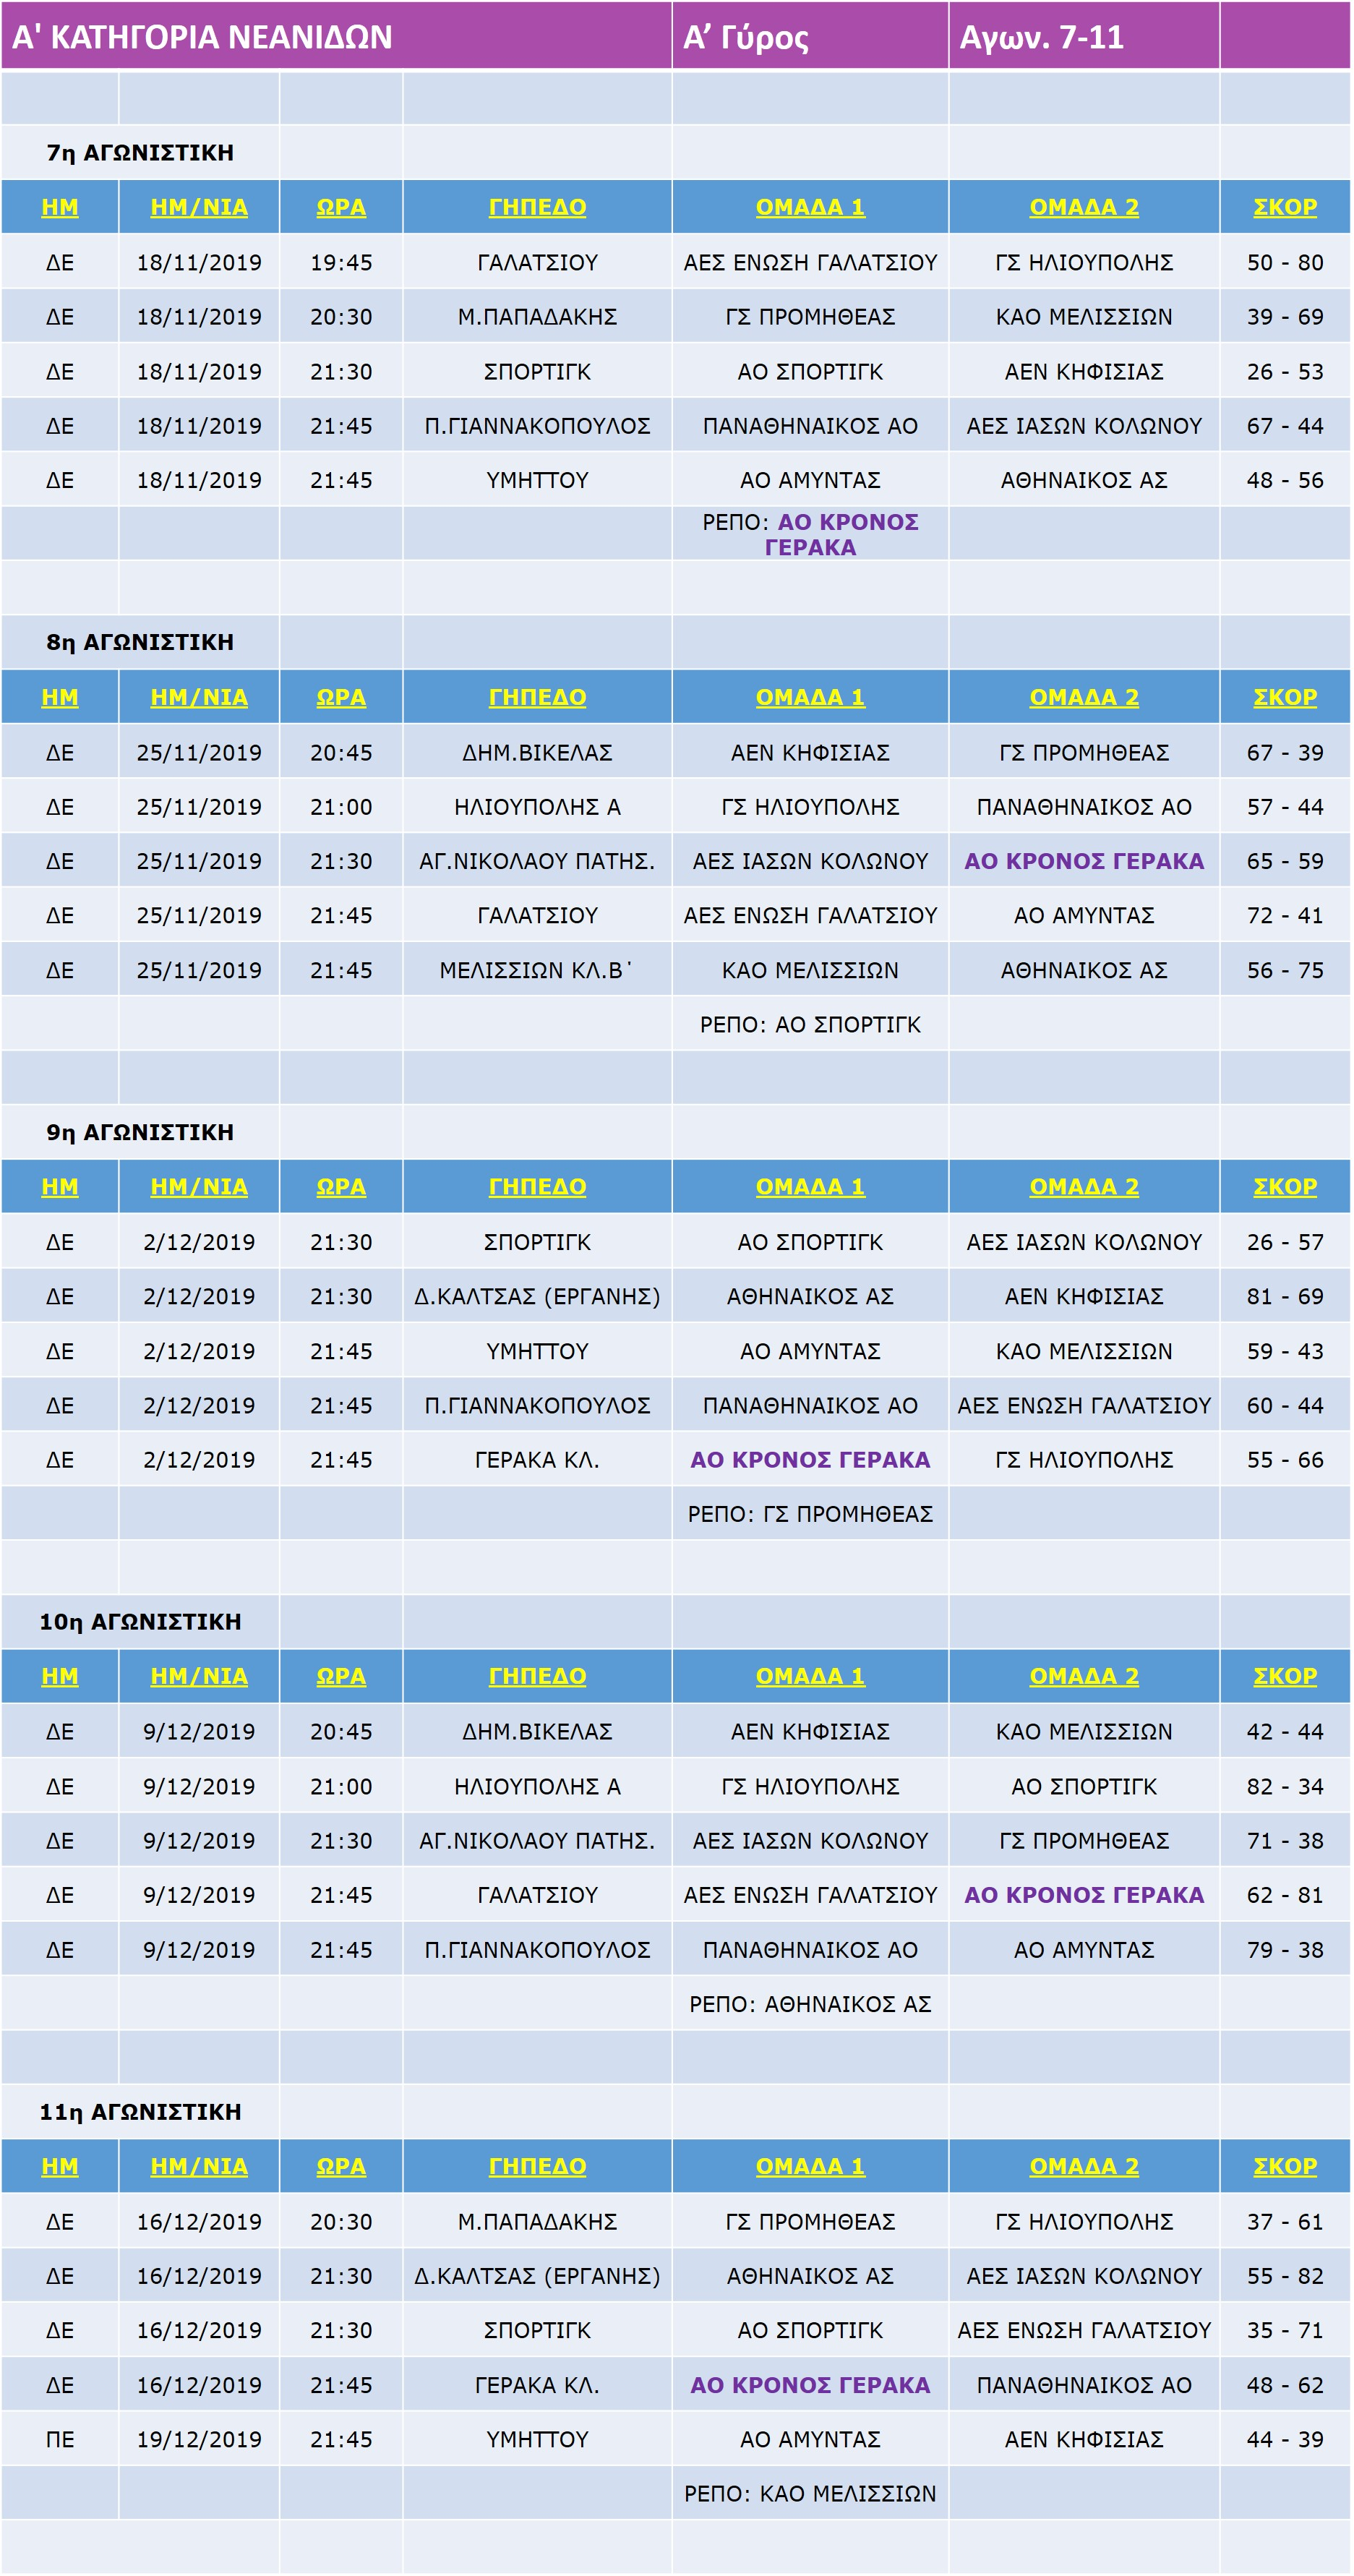 Neanides_A_upd_Match_7-11-11